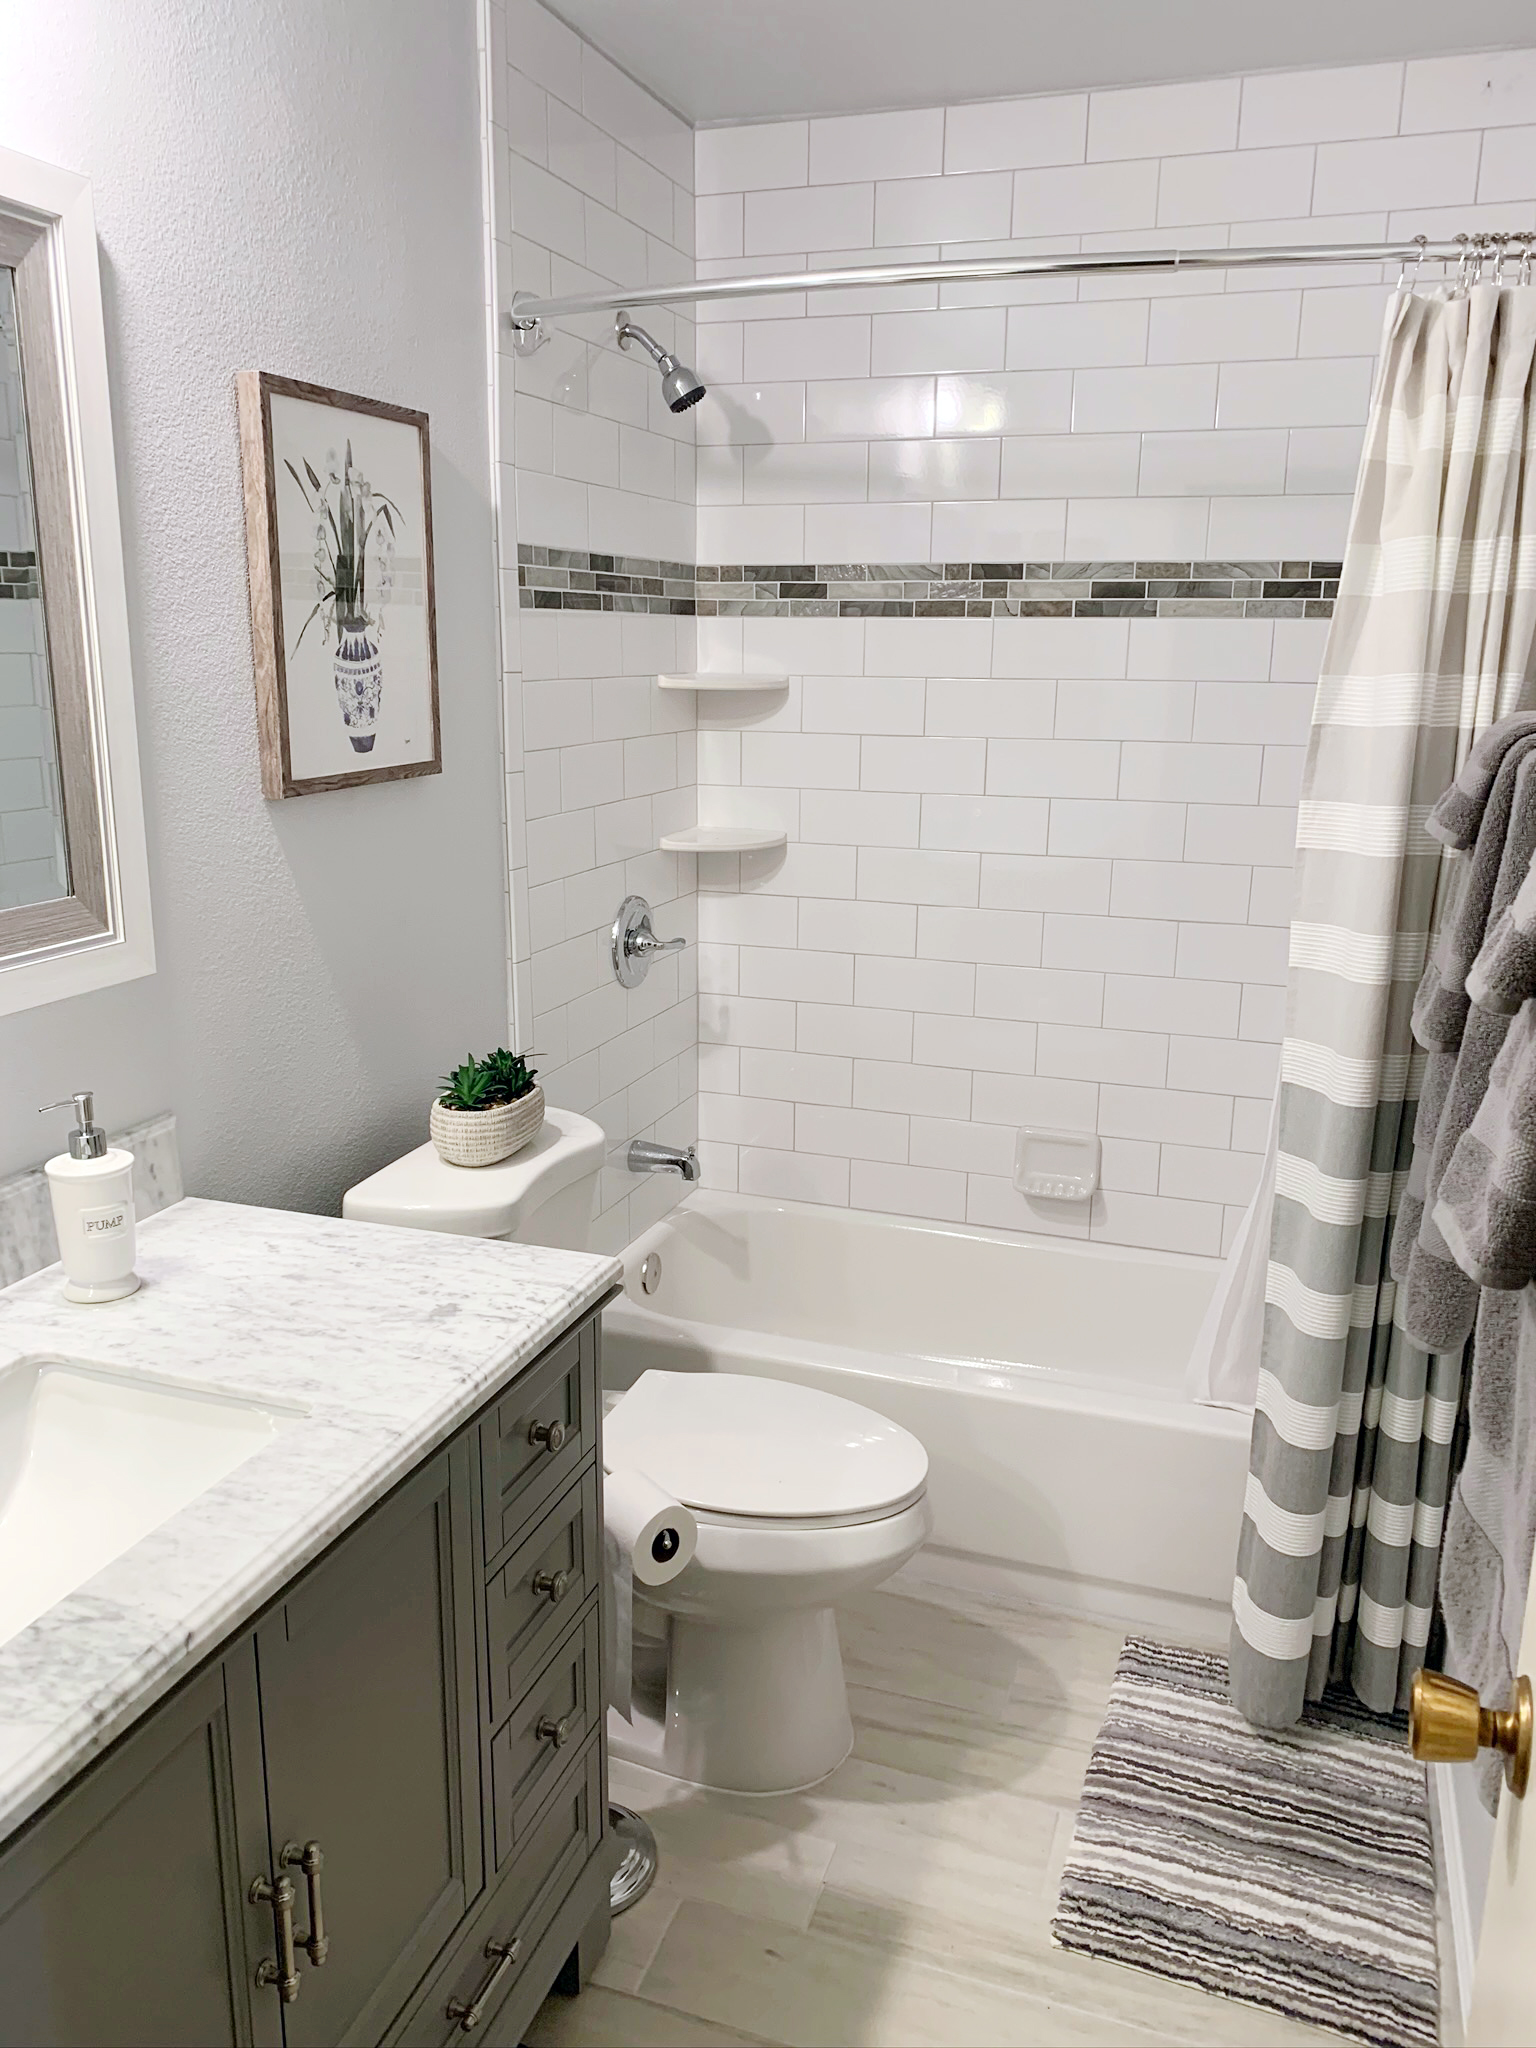 bathroom remodel with white subway tiles. Clean and crisp design.